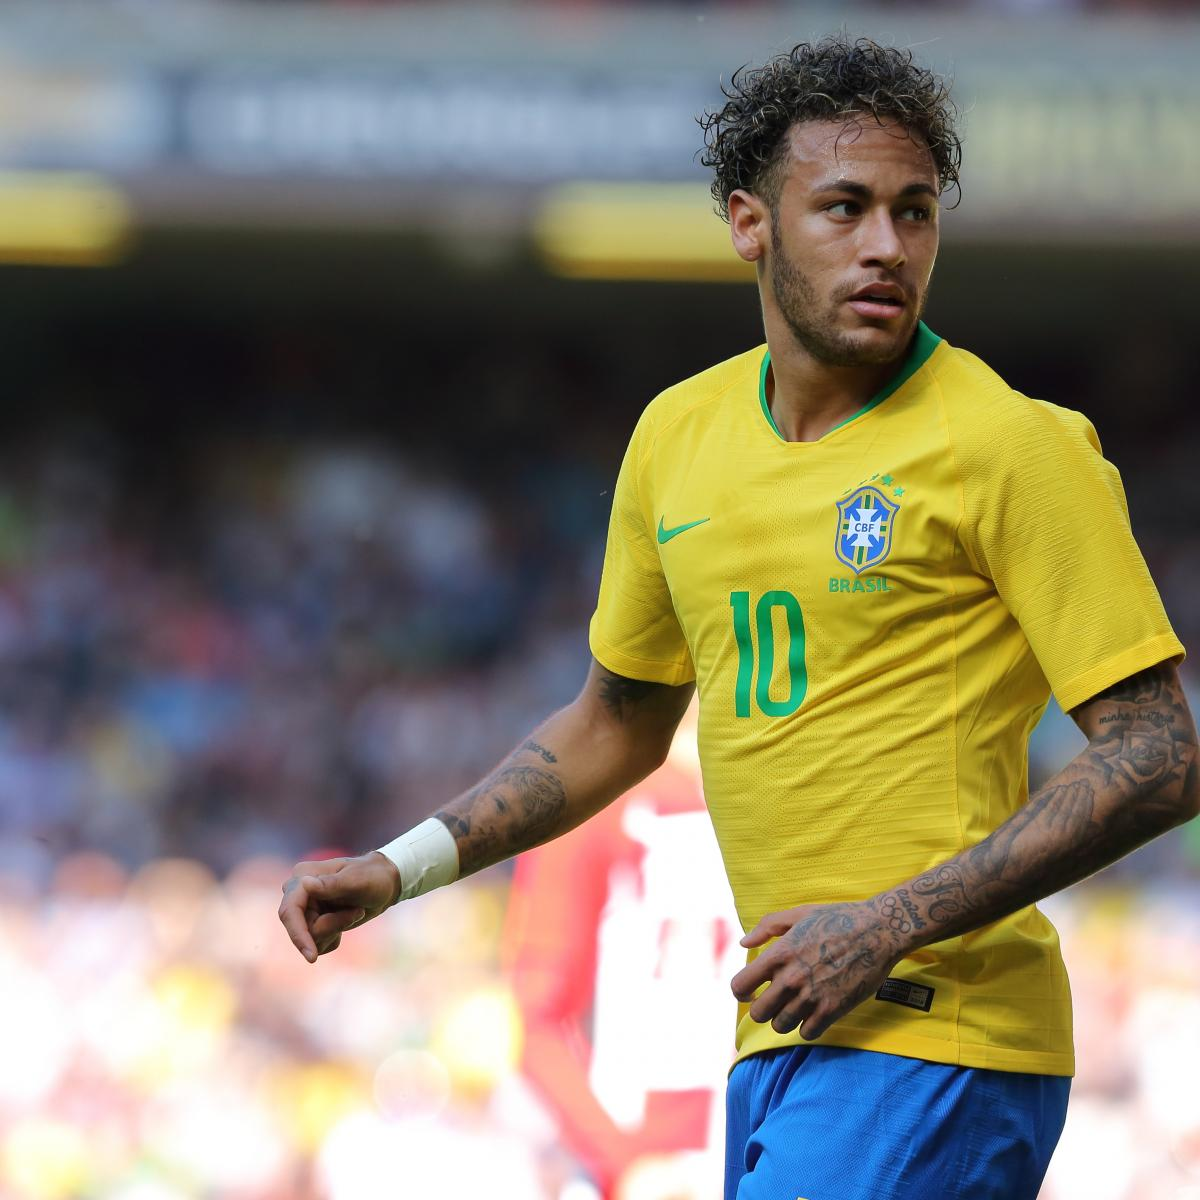 Who And Where Are Brazil Playing This Month And Who Is In: 'I'm 80 Per Cent,' Says Neymar After Scoring For Brazil In